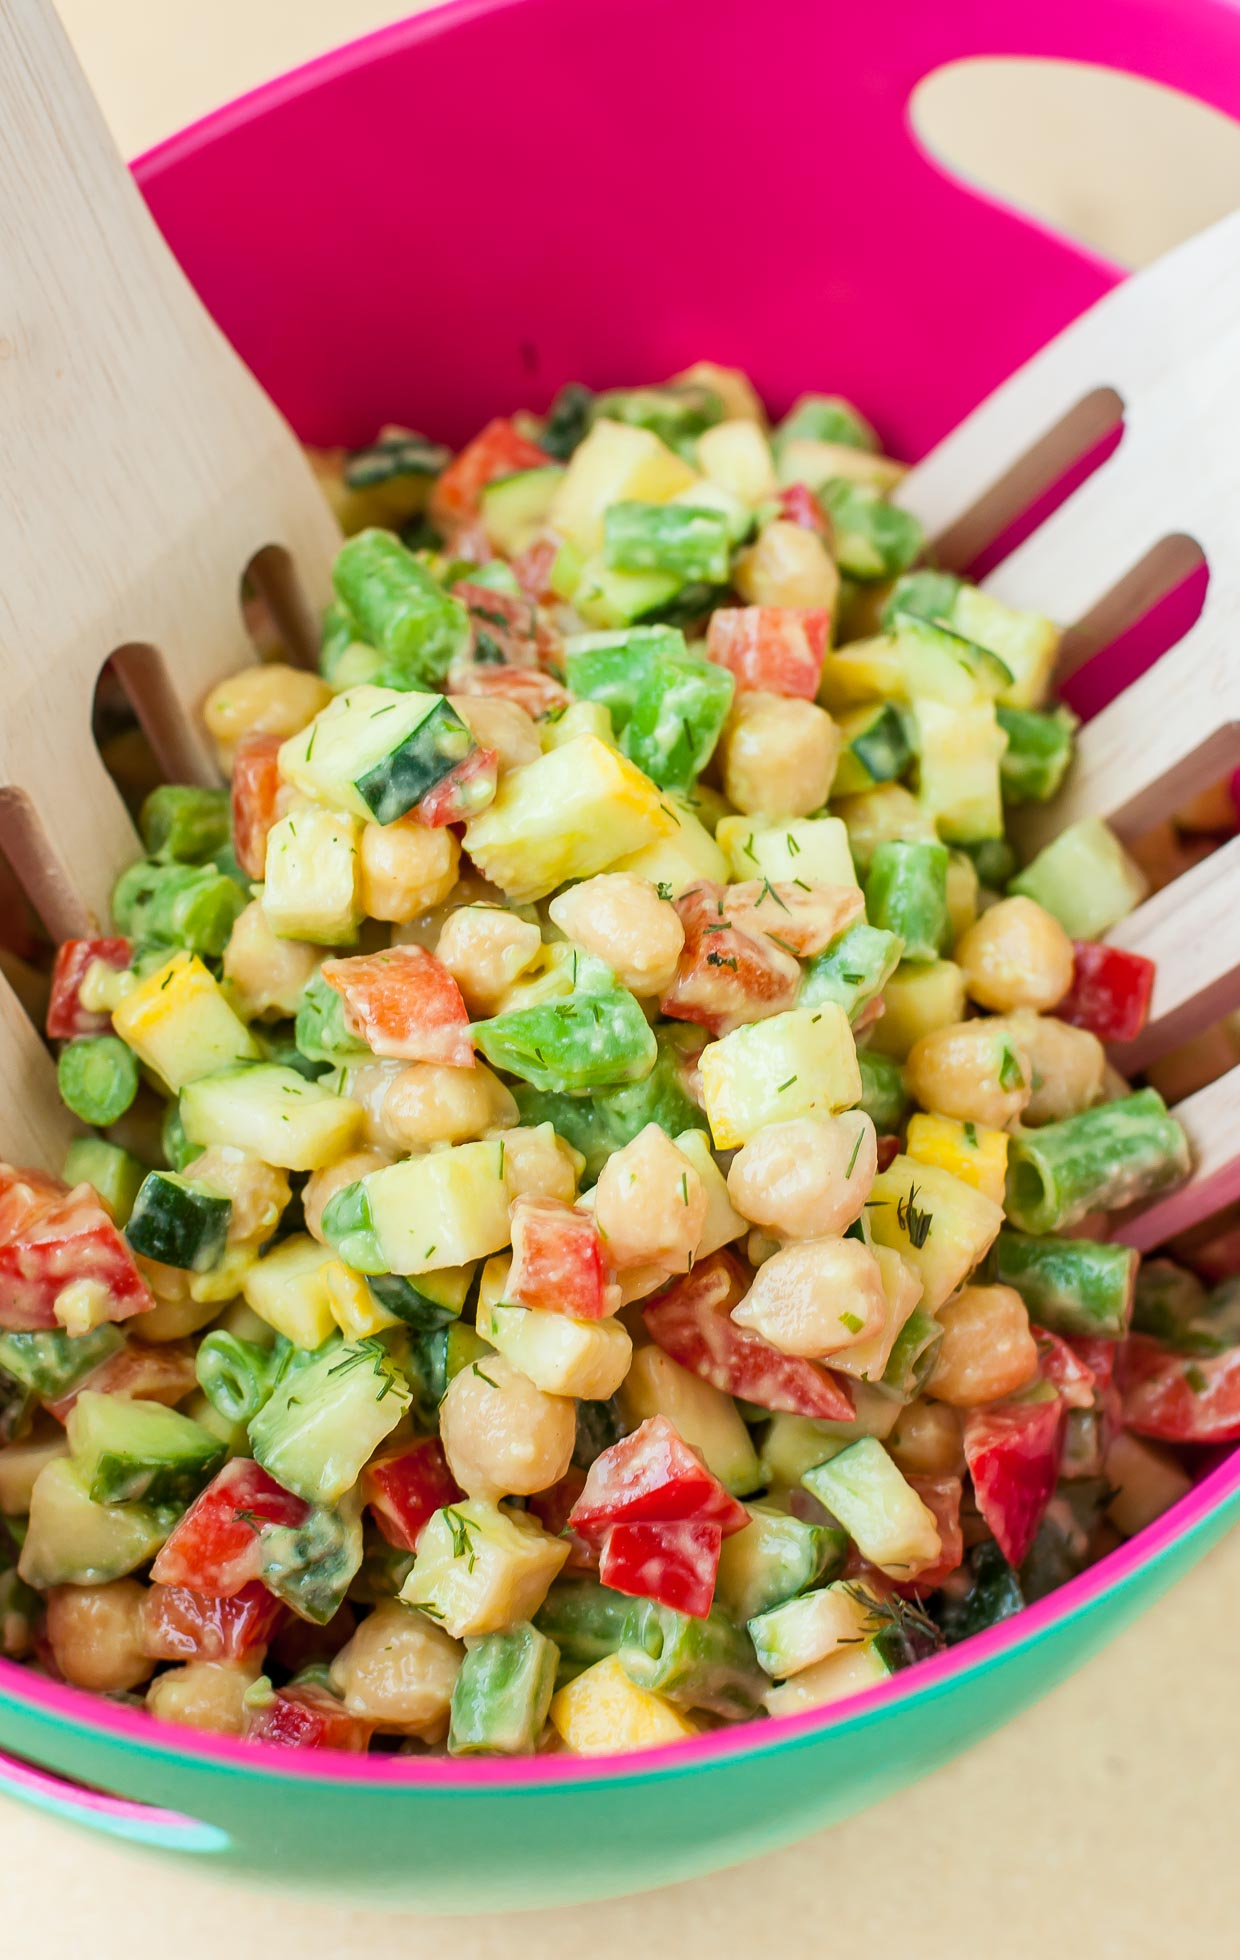 Veg out with this Farmer's Market Chopped Salad and Homemade Avocado Dill Dressing :: quick, easy, and deliciously #vegan